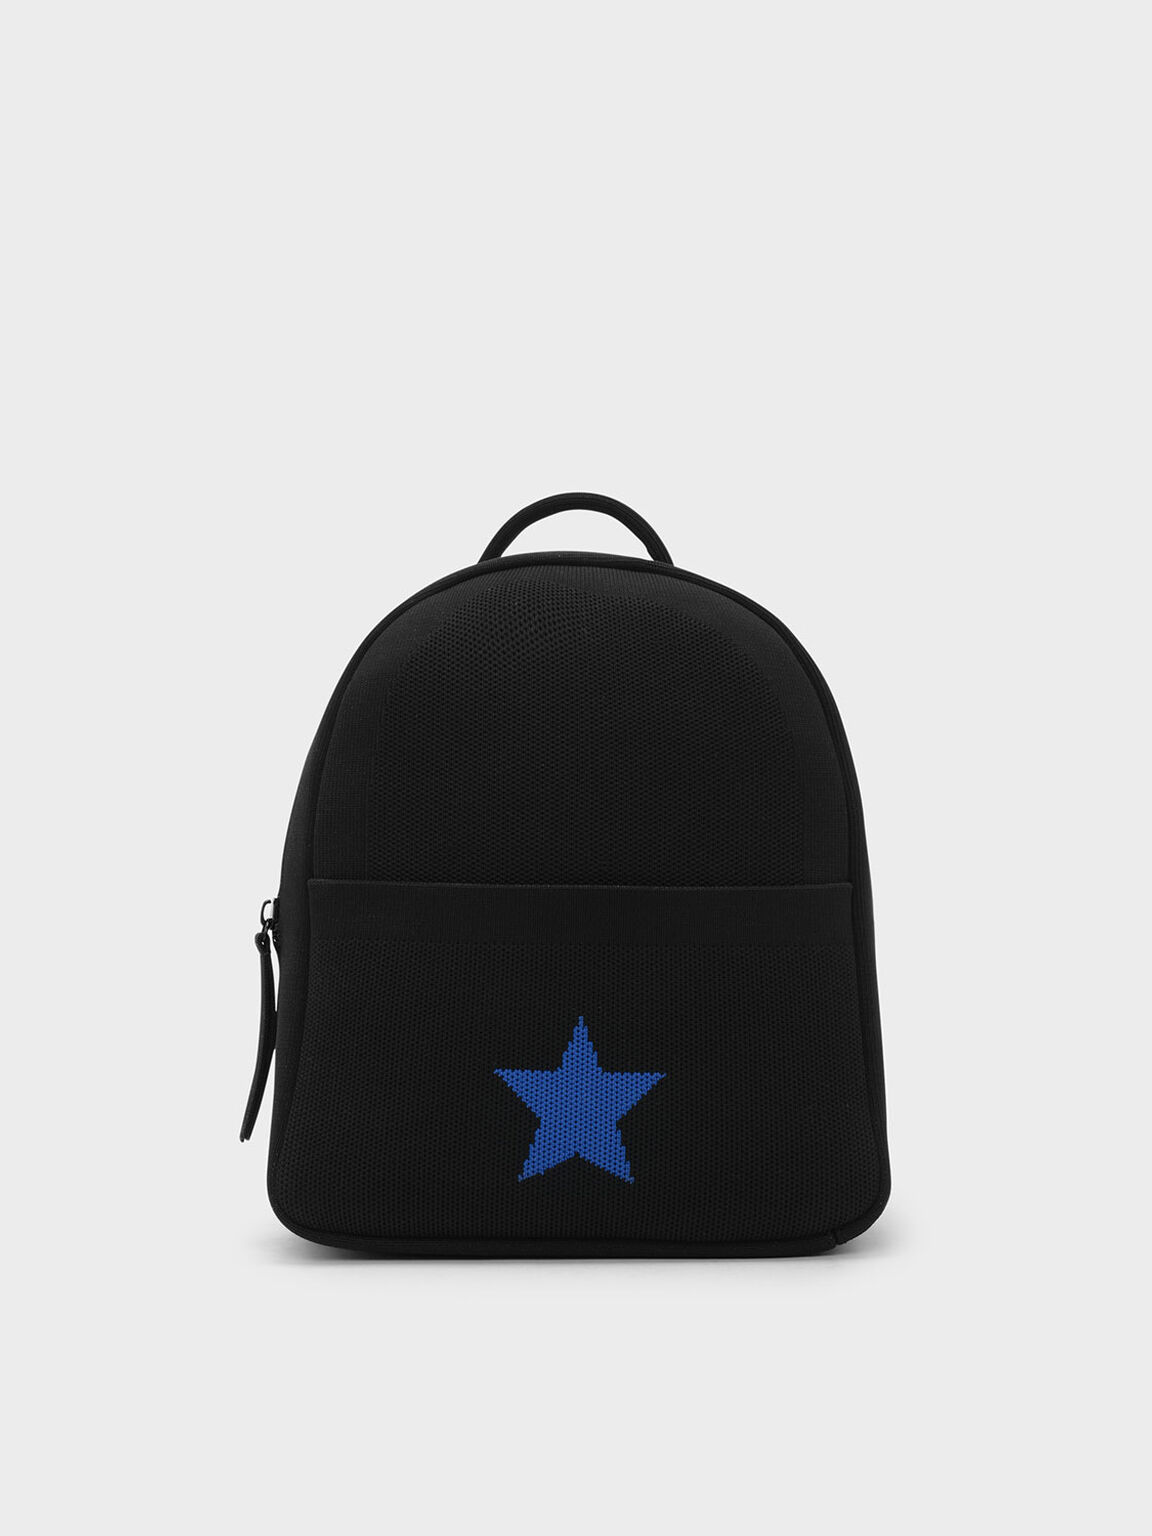 Kids Knitted Backpack, Black, hi-res